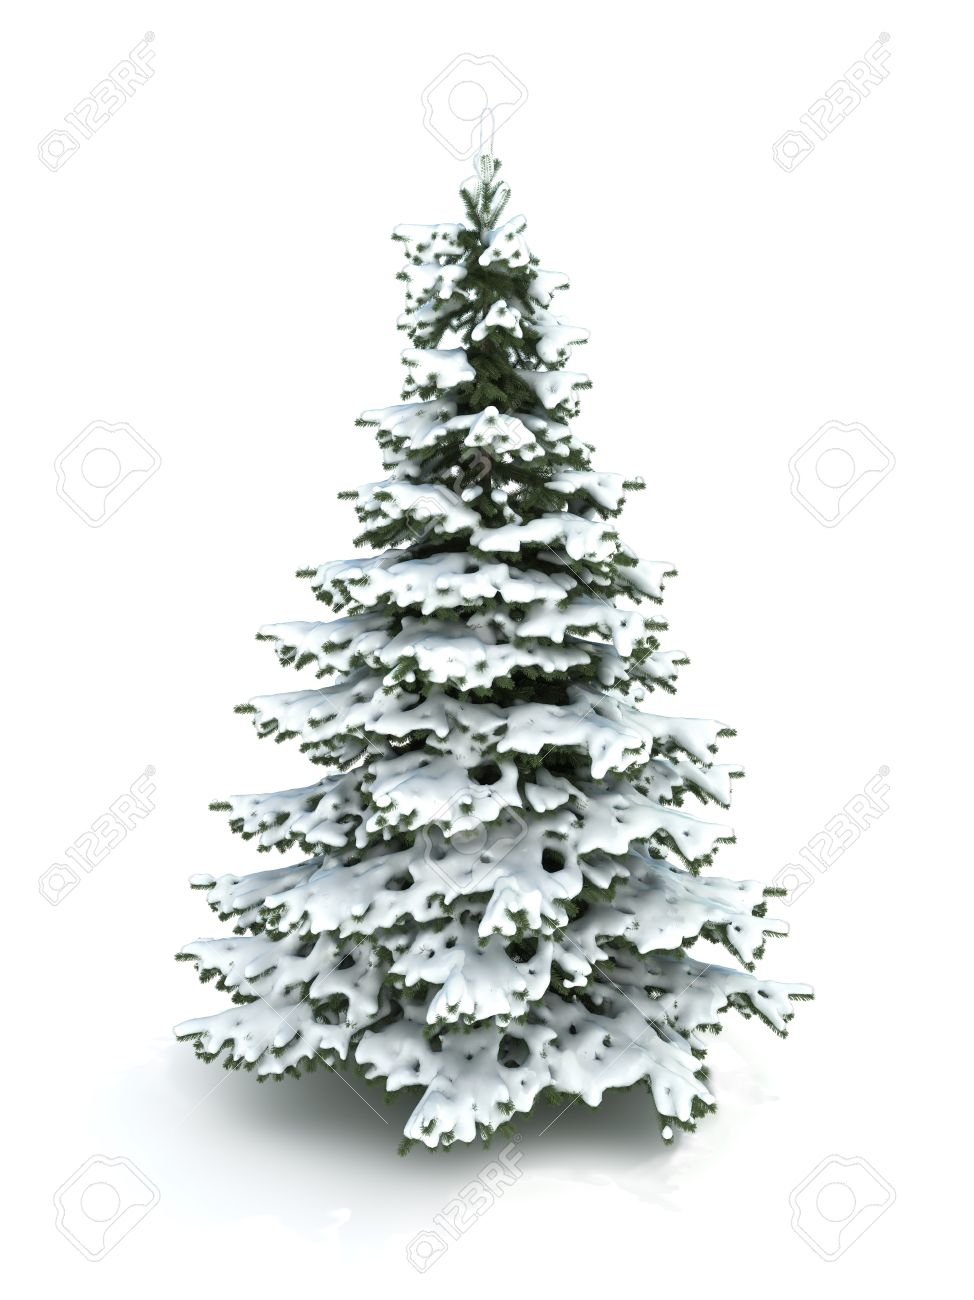 Spruce Tree Christmas Tree Covered With Snowisolated On A Stock